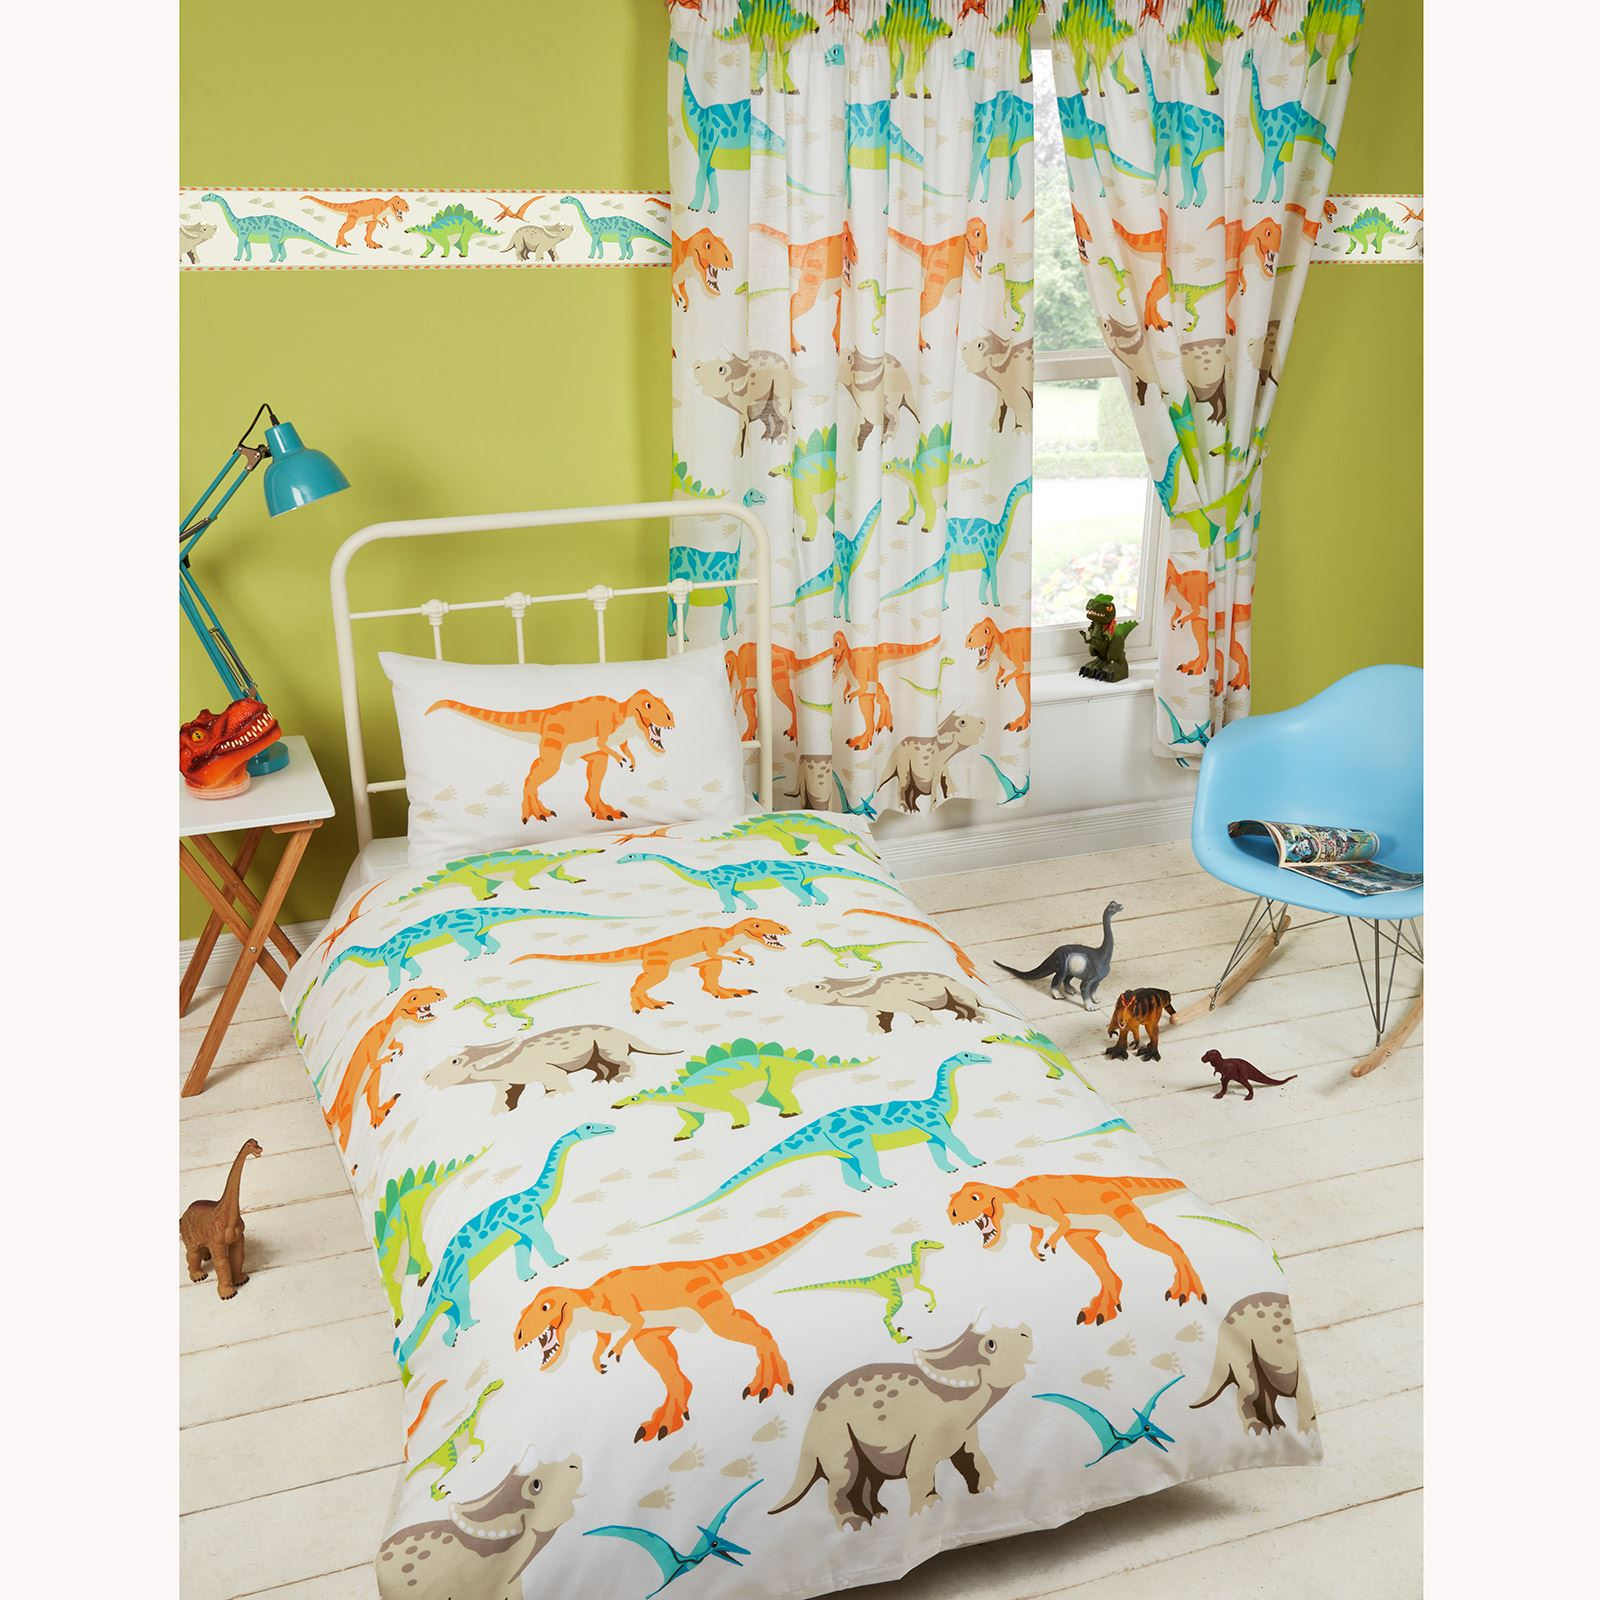 DINOSAUR WORLD KIDS MATCHING BEDDING SETS CURTAINS WALLPAPER